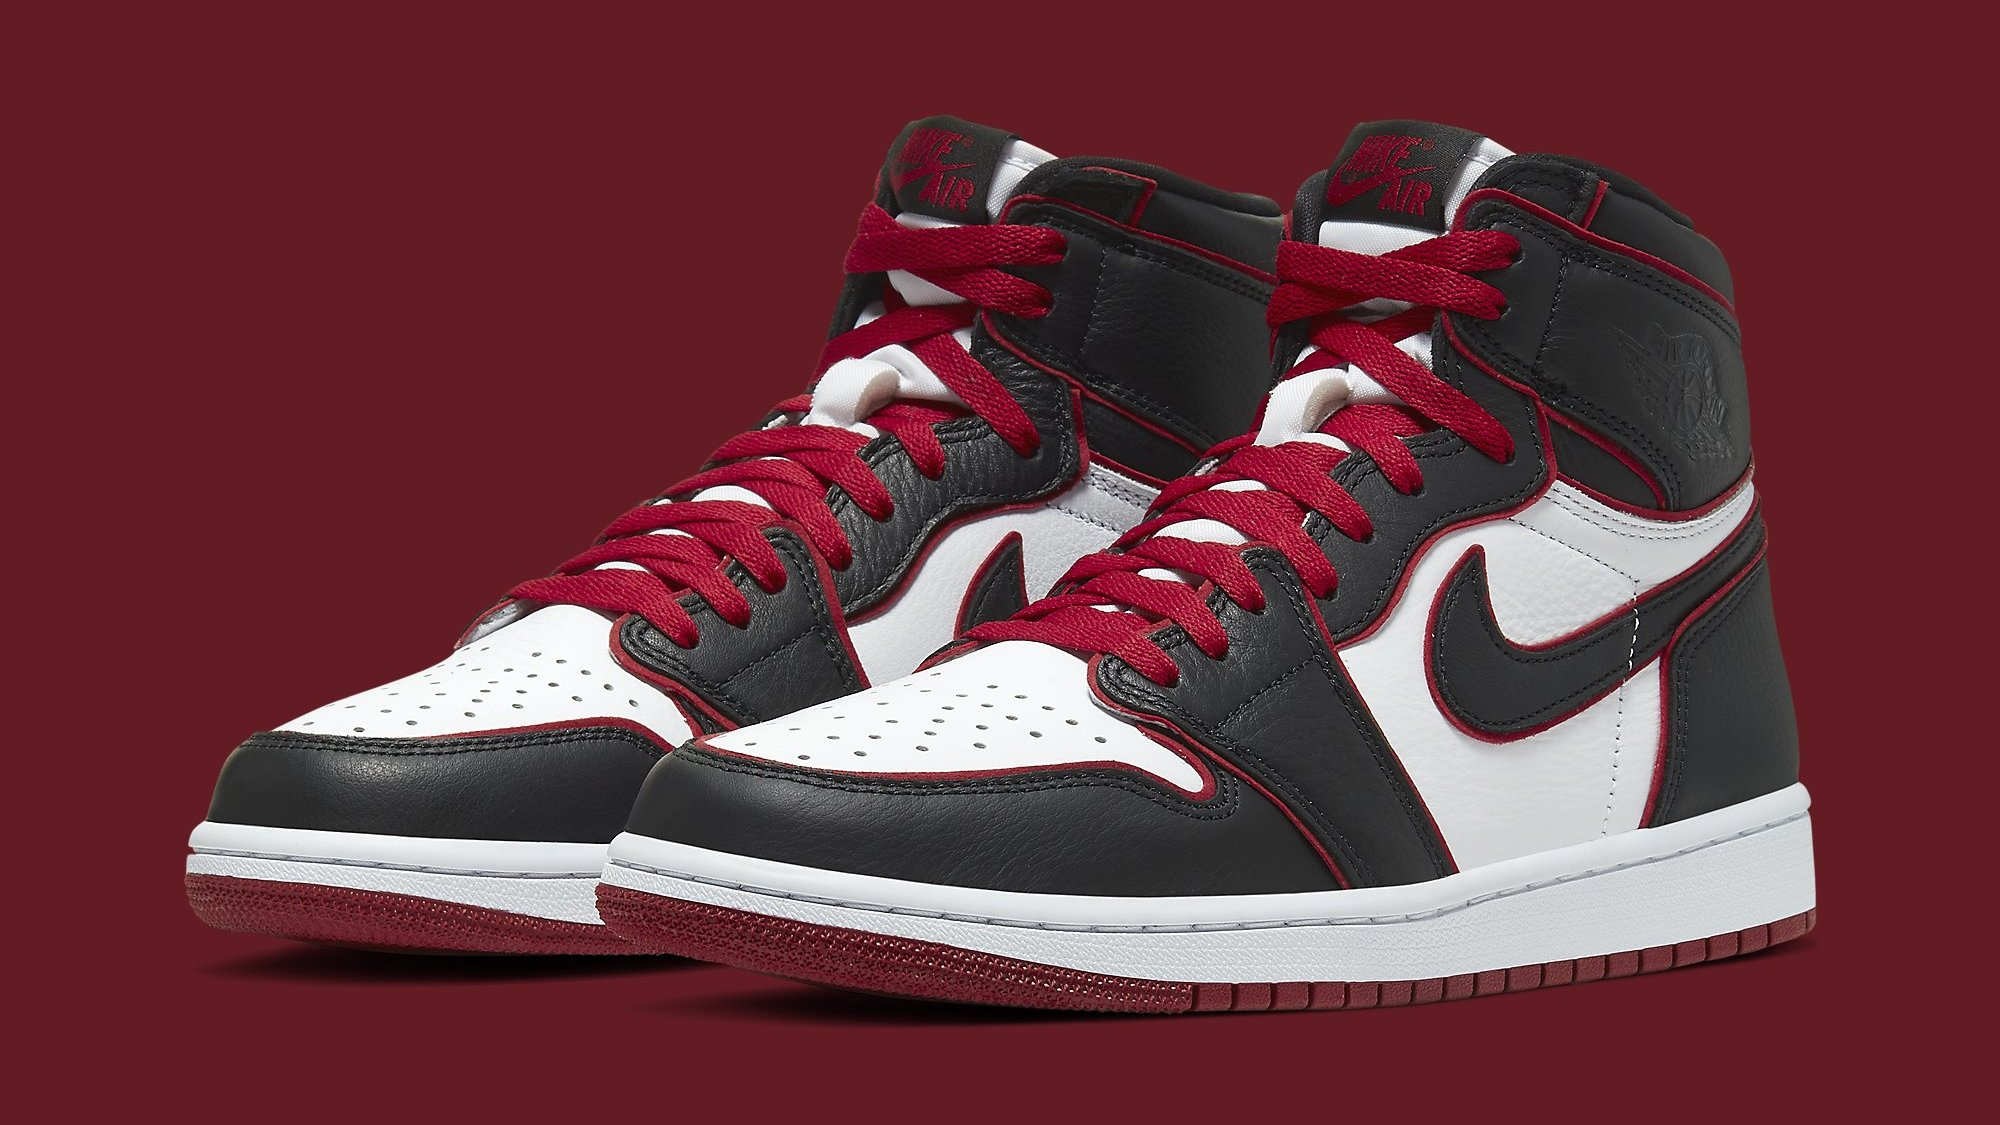 Air Jordan 1 Retro High OG 555088 062 'Bloodline' Release